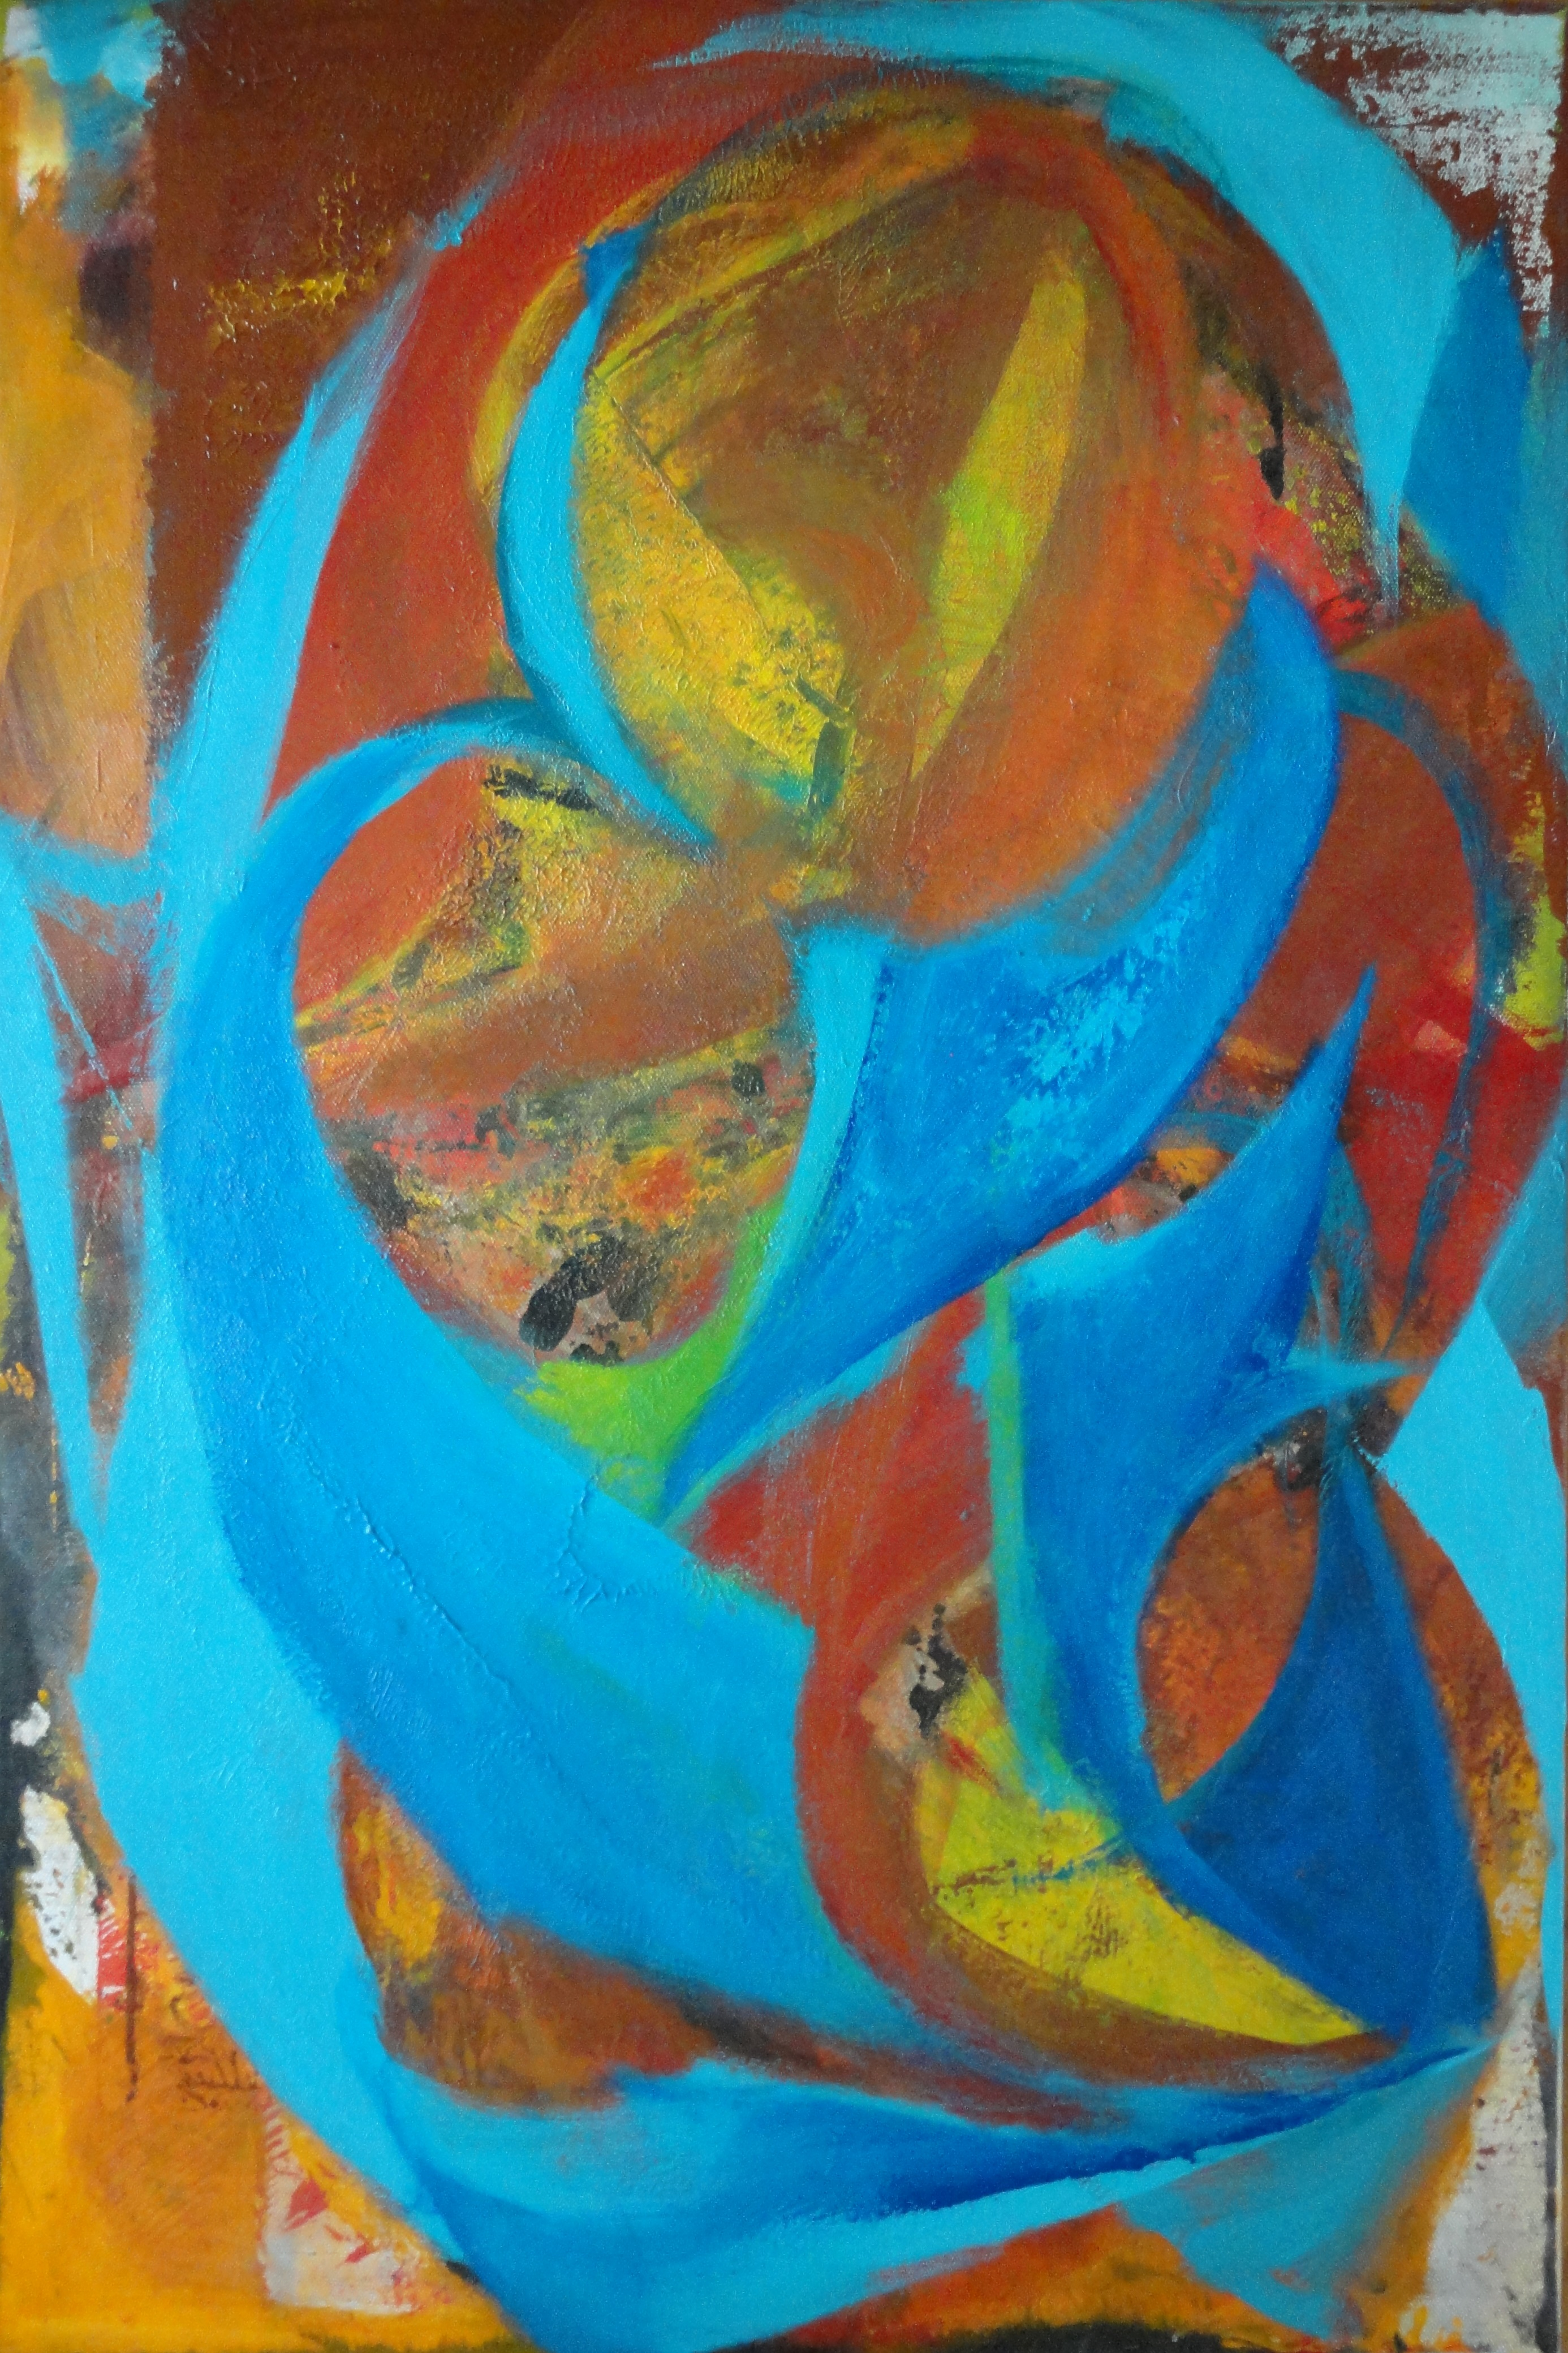 Uros Paternu 1999 Untitled 09 artwork by Uros Paternu - art listed for sale on Artplode